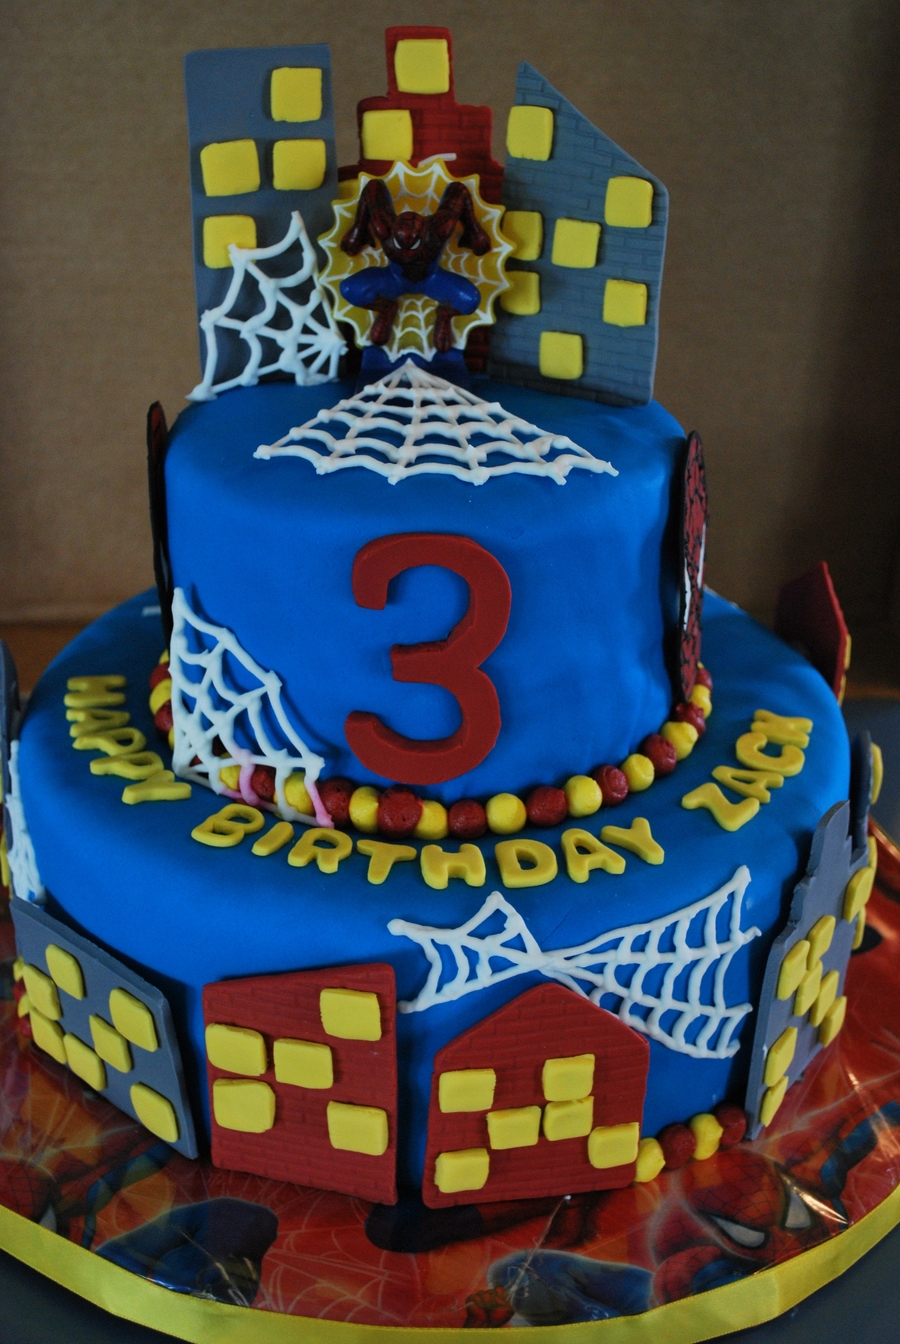 Spiderman 3Rd Birthday Cake - CakeCentral.com